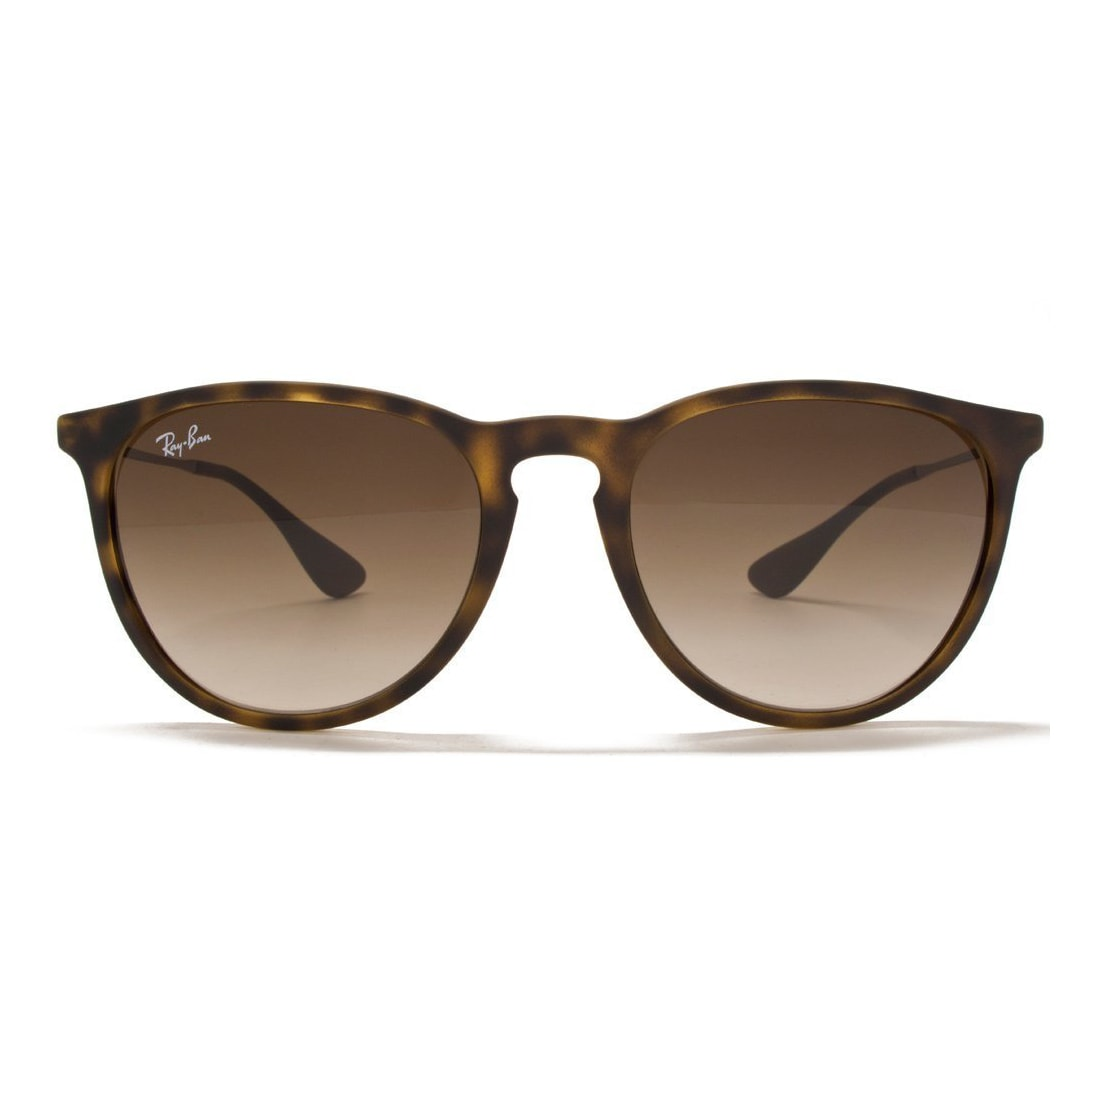 de3bf05e6a2 Shop Ray-Ban Erika RB 4171 Unisex Tortoise Gunmetal Frame Brown Gradient  Lens Sunglasses - Free Shipping Today - Overstock - 9007693